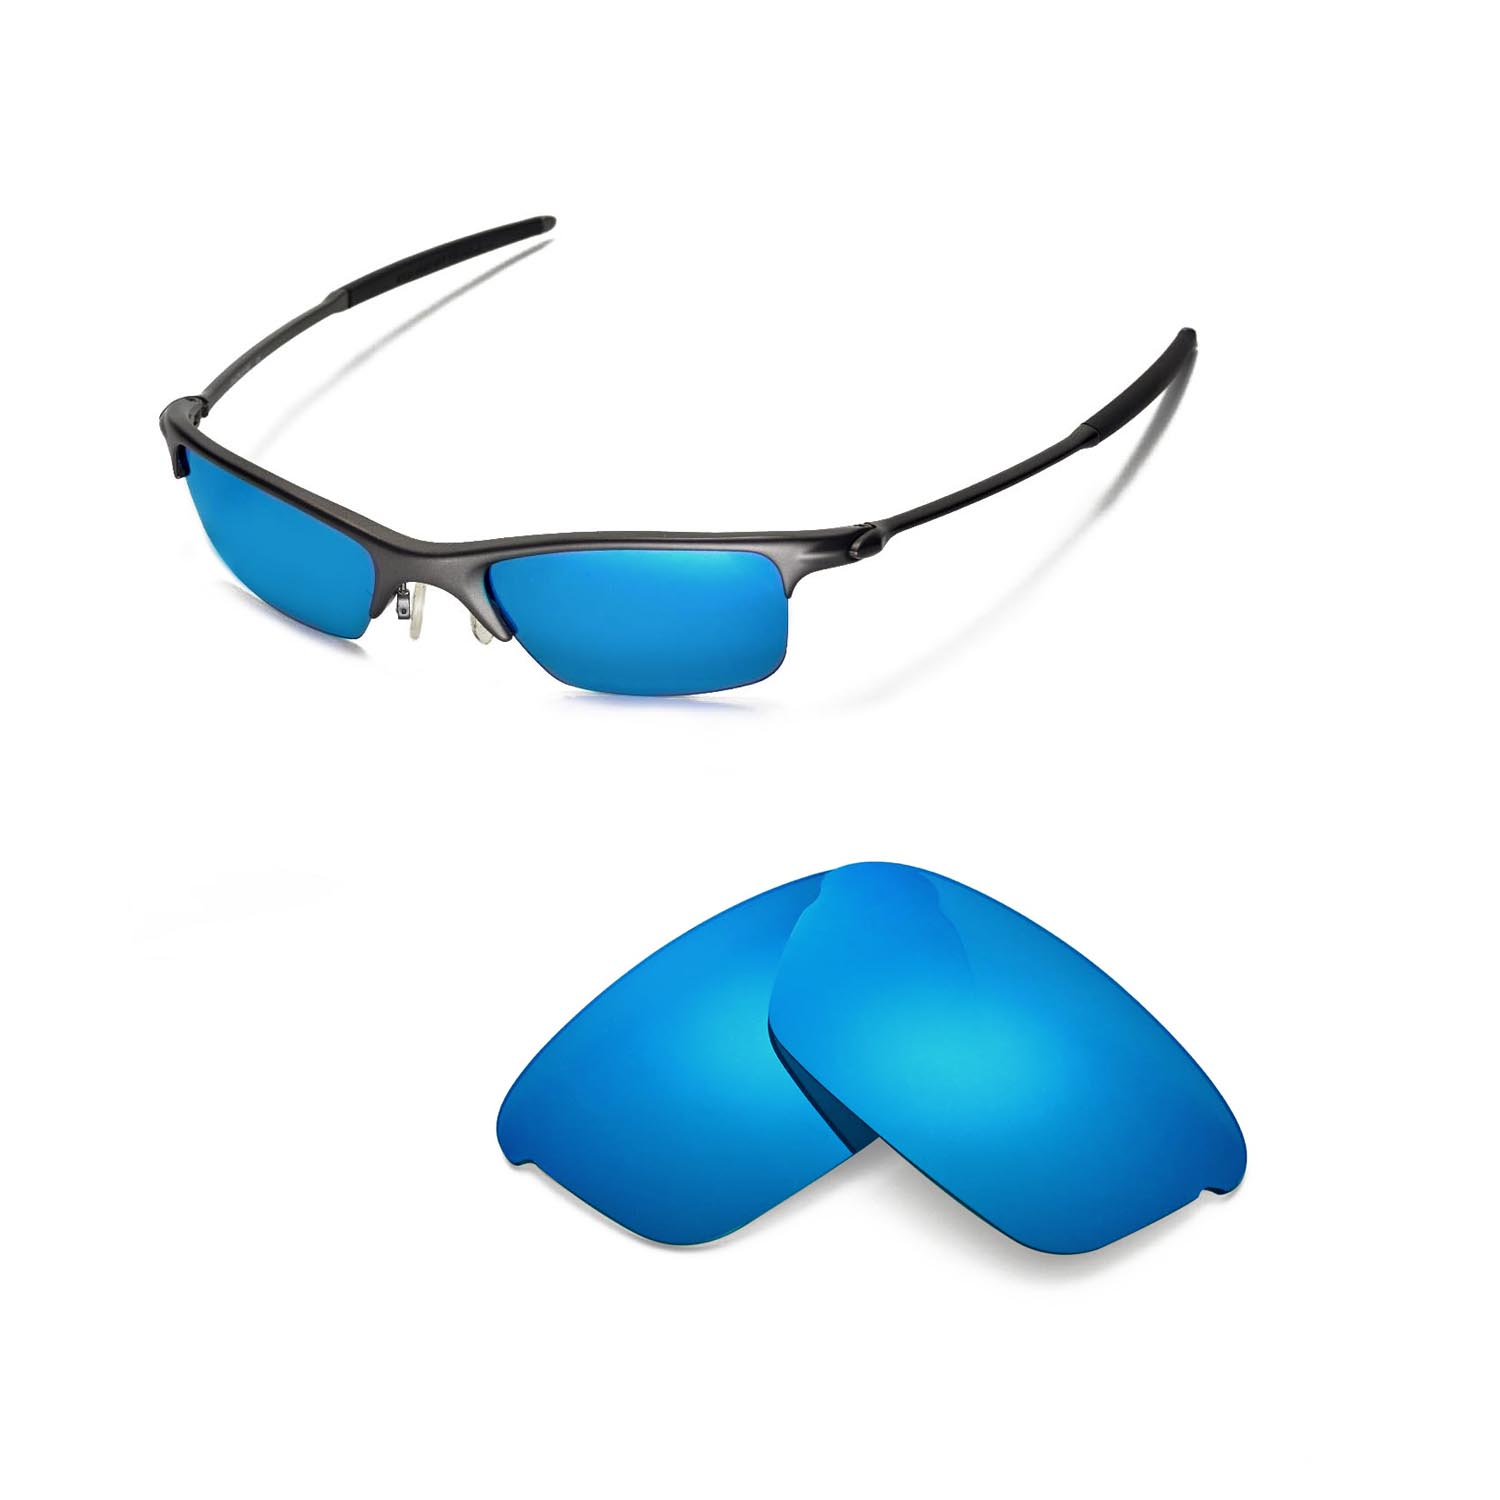 bd2883b2d4 Details about New Walleva Polarized Ice Blue Replacement Lenses For Oakley  Razrwire Sunglasses